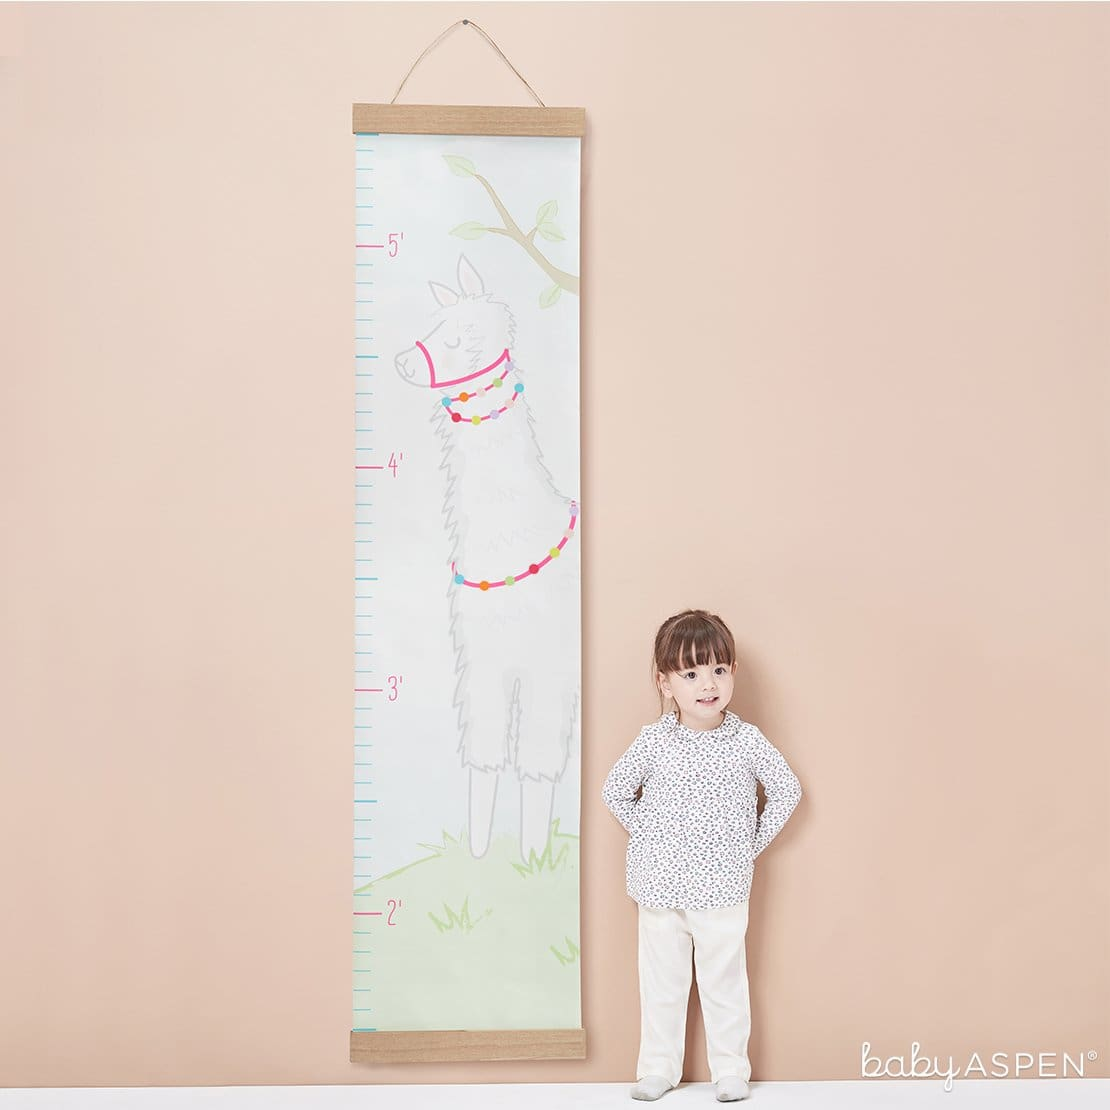 Llama Hanging Growth Chart | Loveable Growth Charts for Your Little One | Baby Aspen